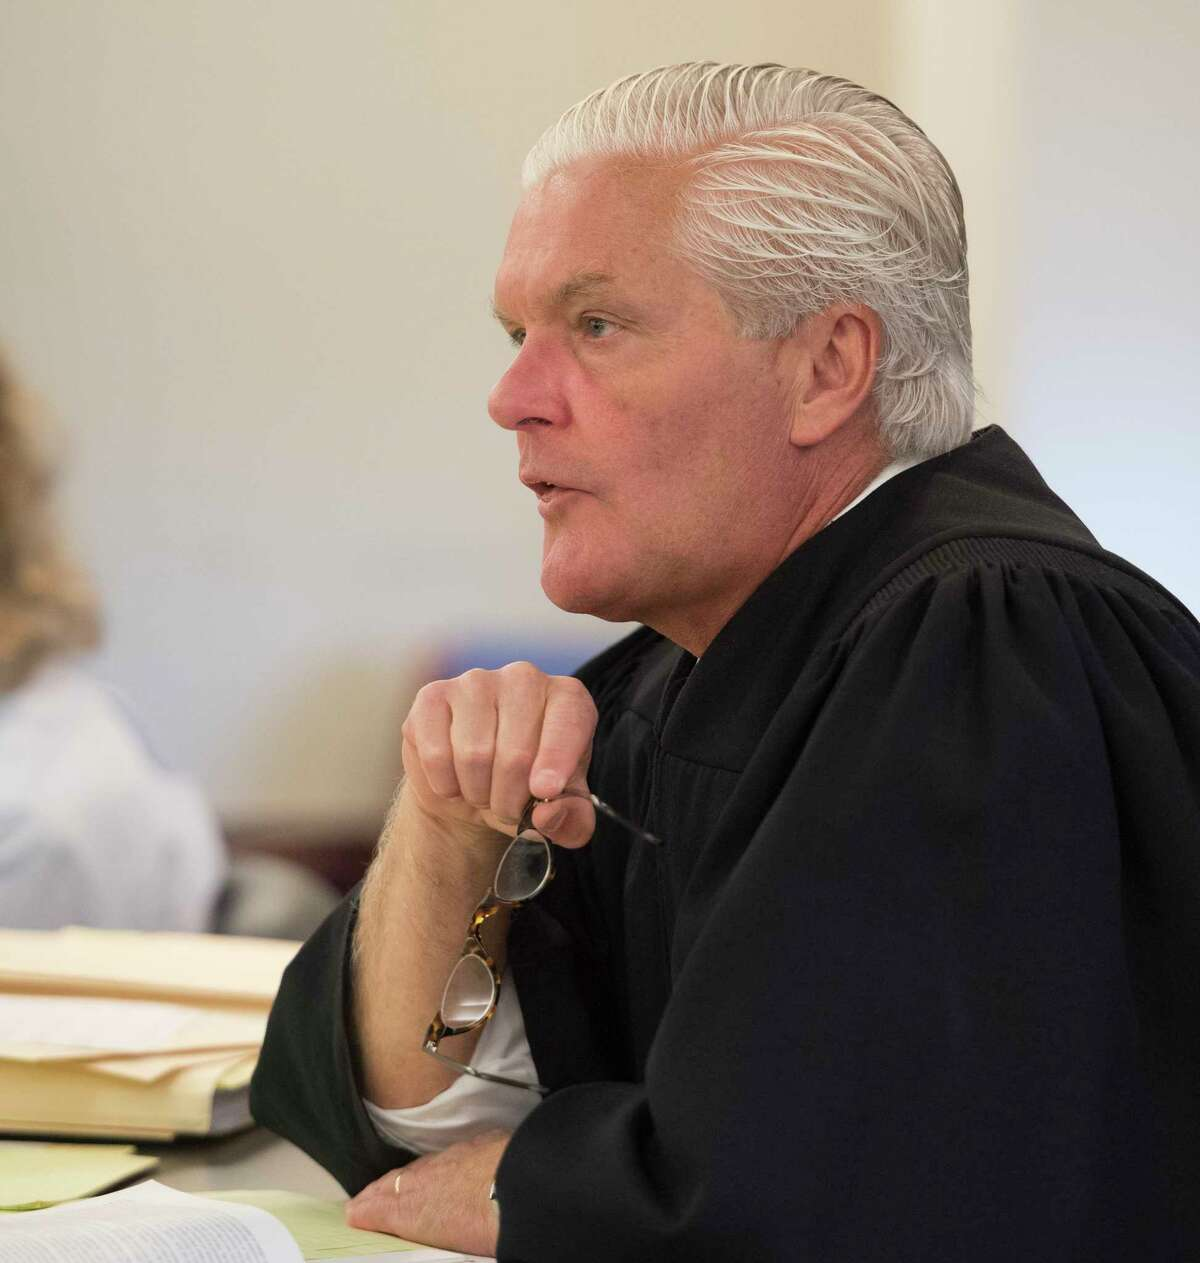 Judge Peter Lynch presides over two cases of interest Tuesday Sept.25, 2018 in Albany County Court in Albany, N.Y. (Skip Dickstein/Times Union)